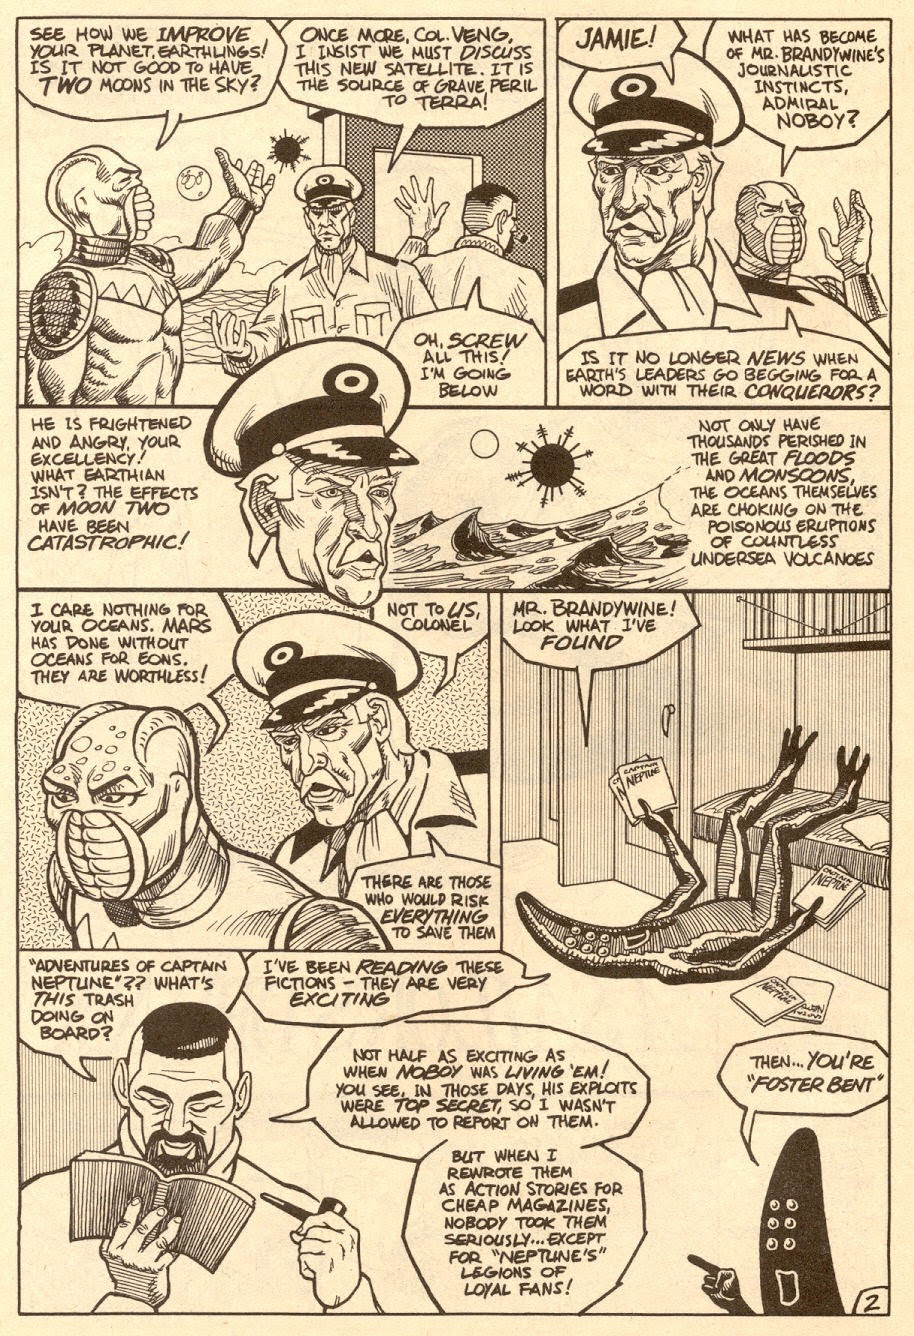 Commies from Mars: The Red Planet issue 6 - Page 21